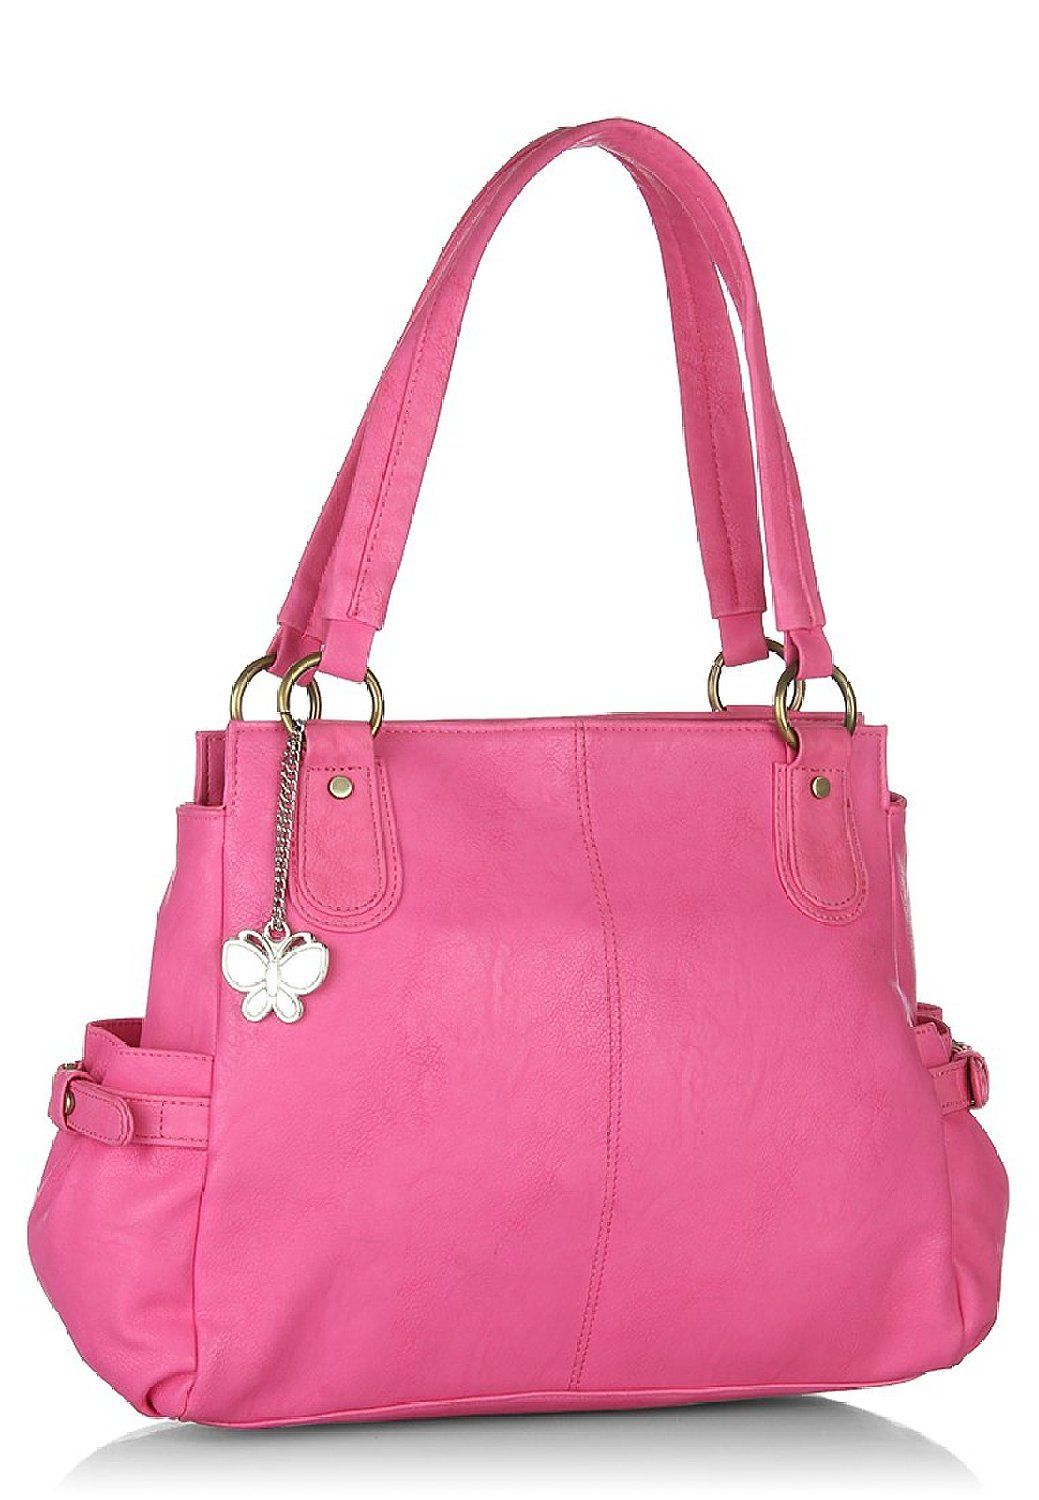 Pink Handbags Online | Luggage And Suitcases